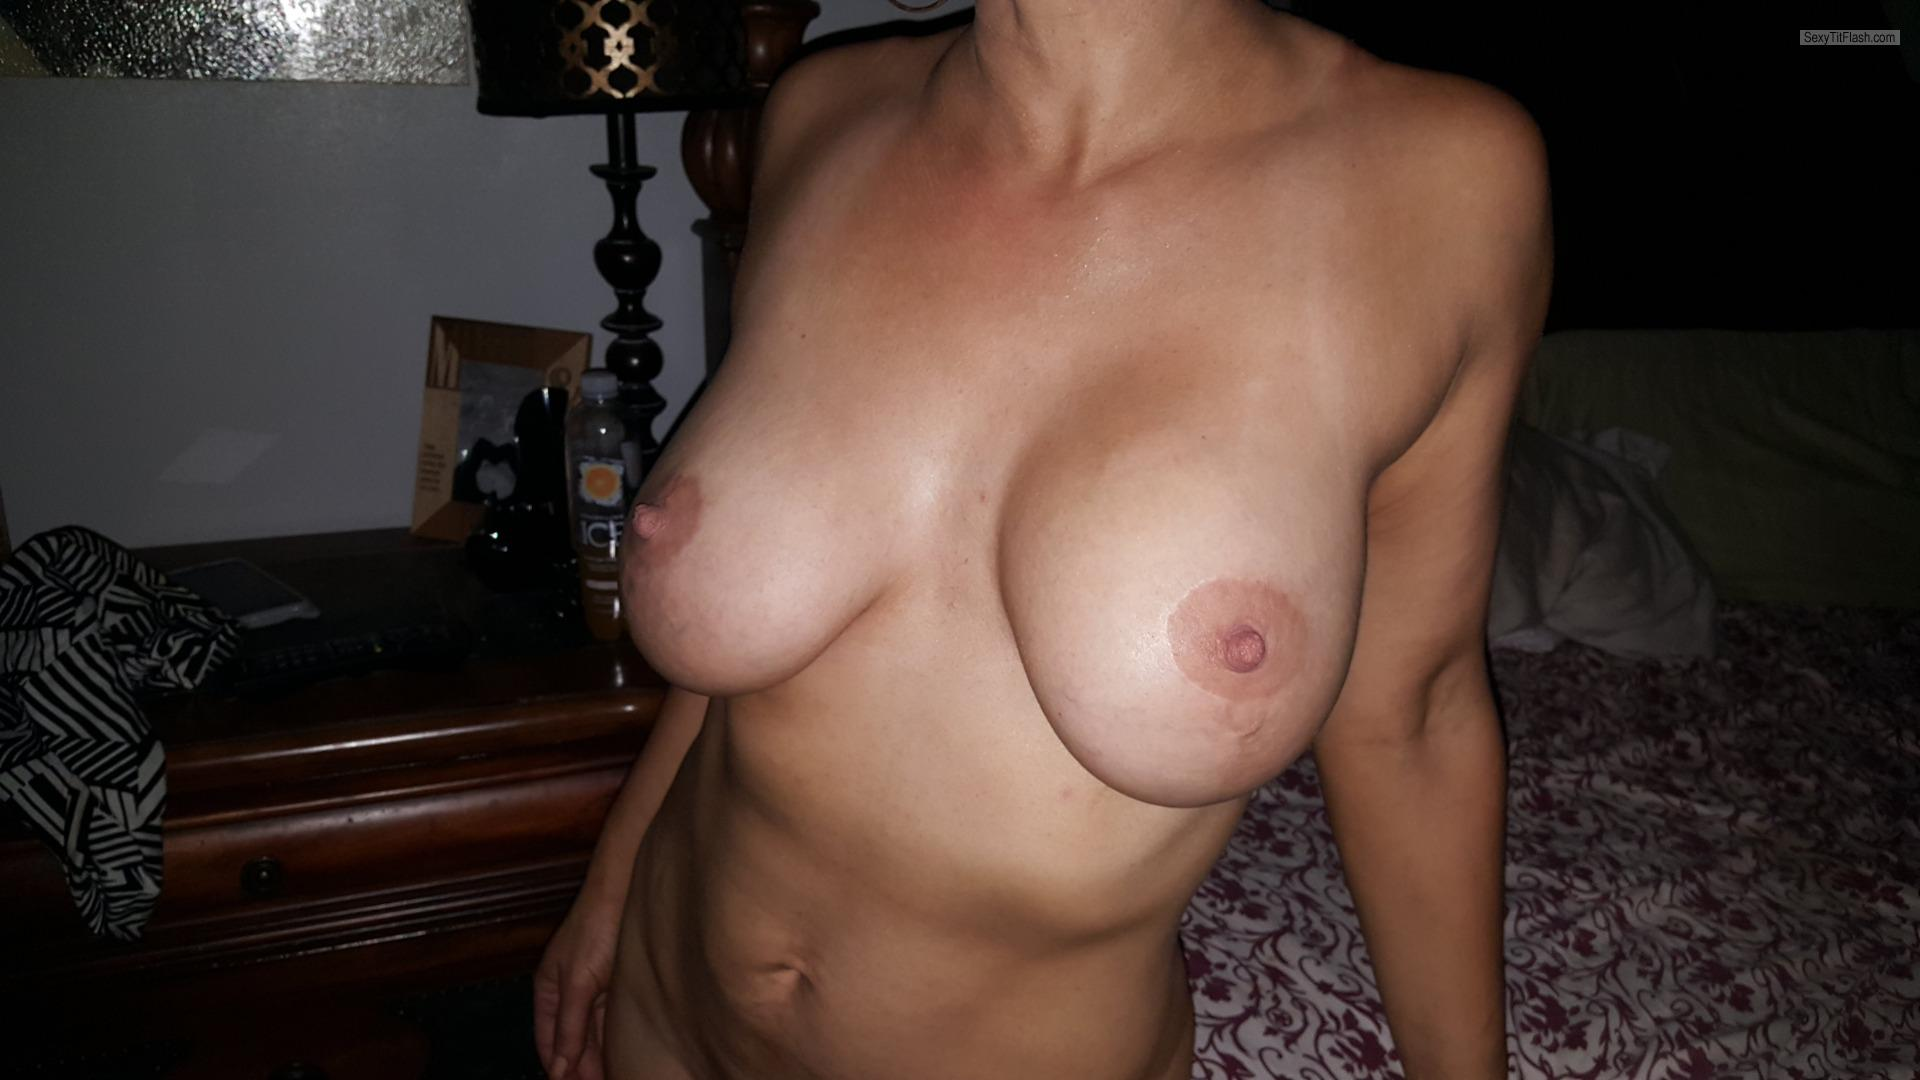 Tit Flash: Wife's Big Tits - Milf77 from United States